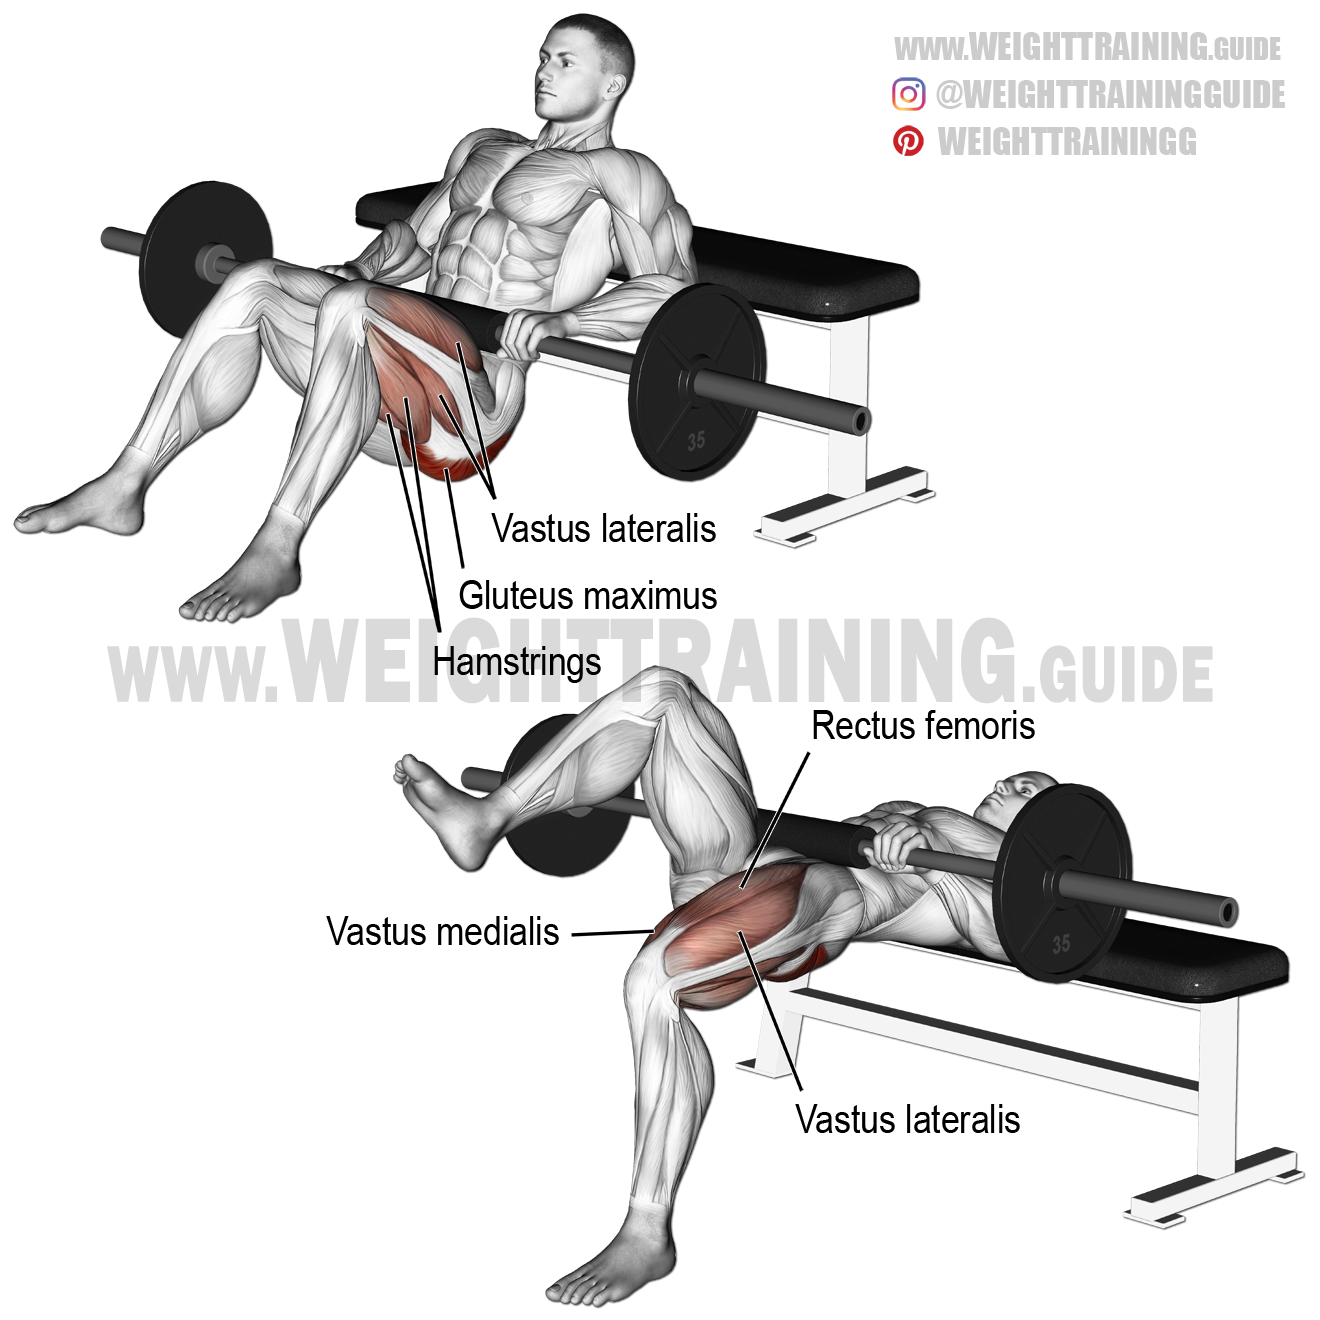 Barbell one-leg hip thrust exercise instructions and video